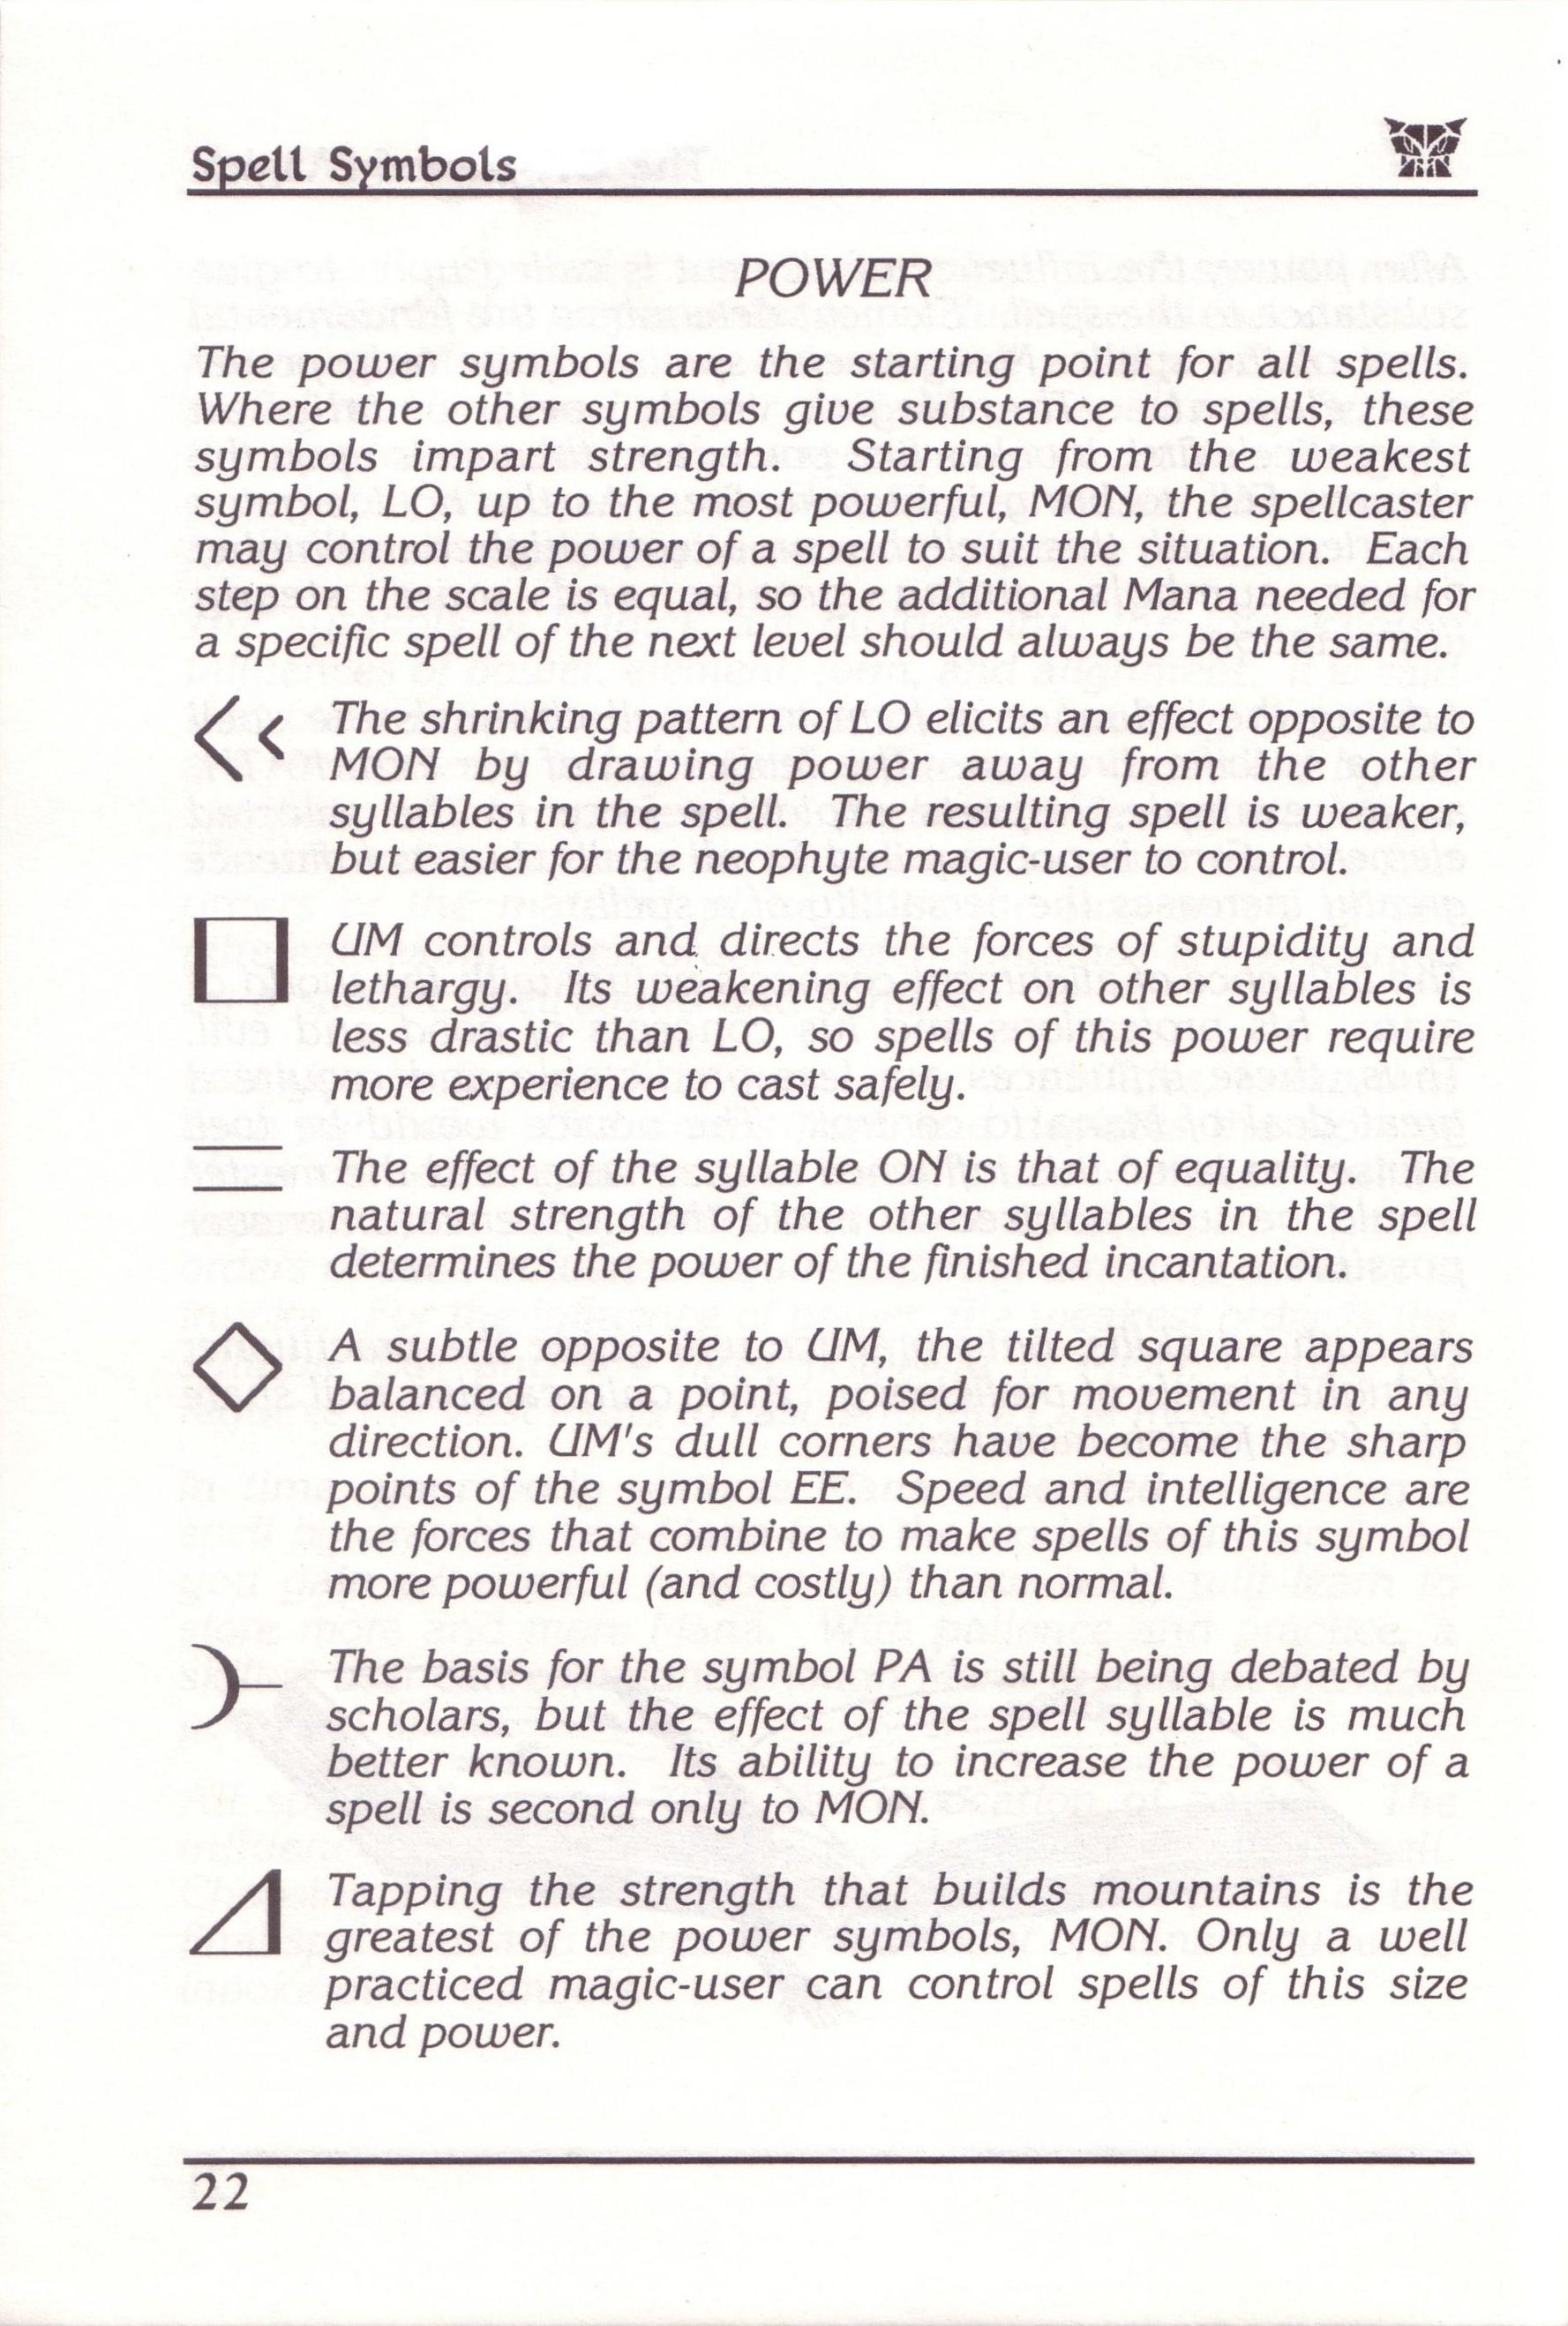 Dungeon Master for PC with FTL Sound Adapter (US Release) - Manual Page 46